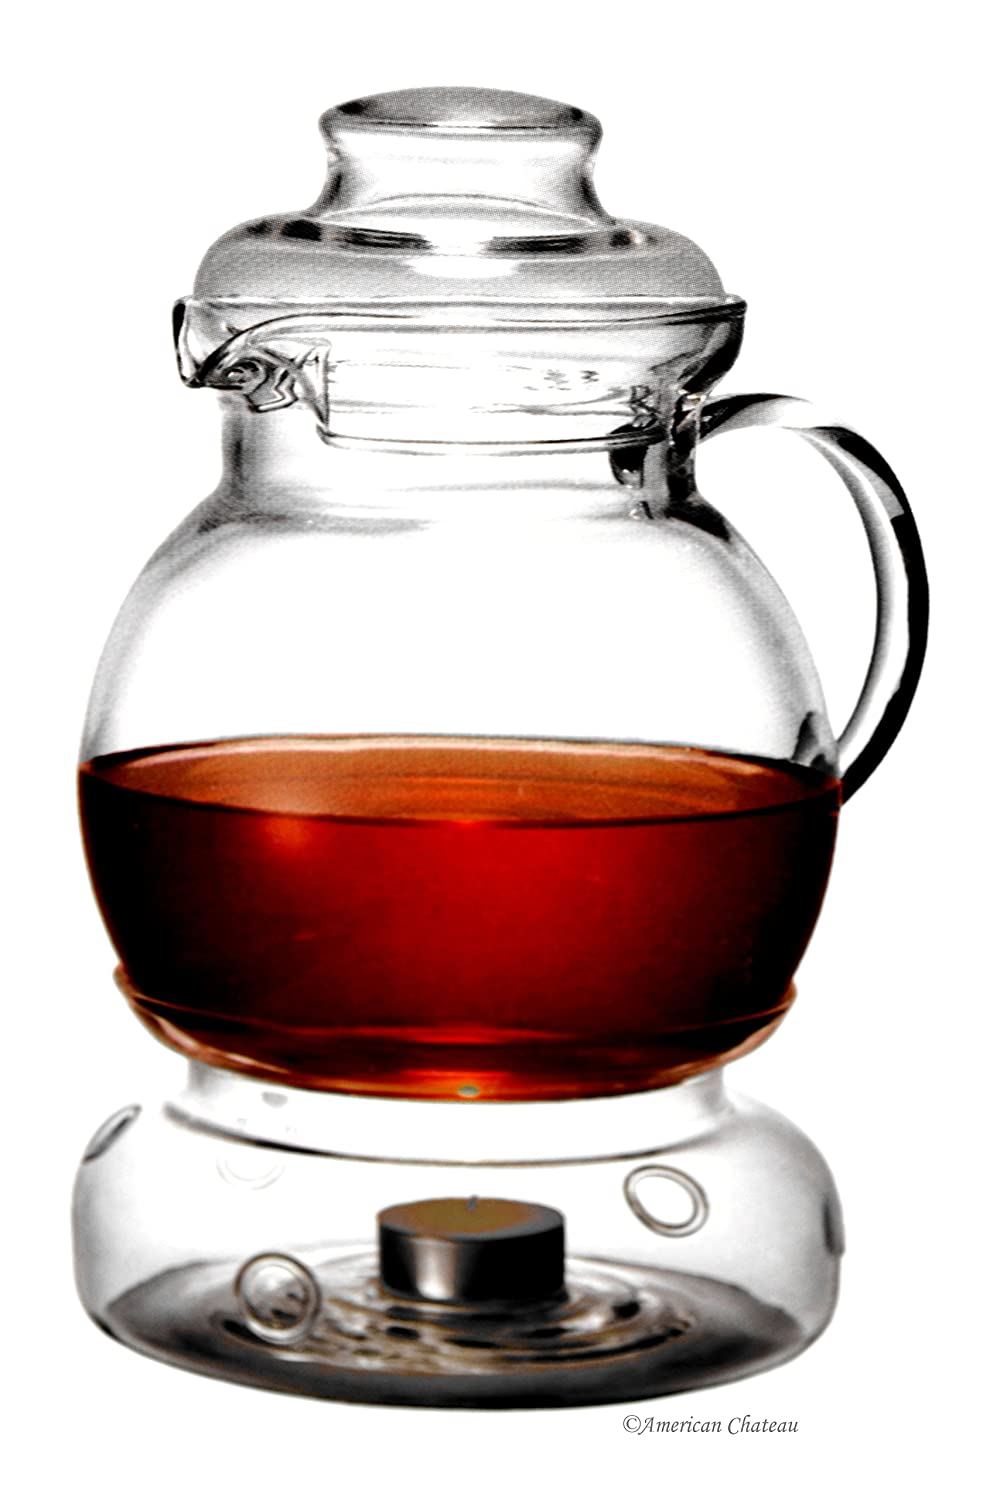 Large 51oz/1.5L Polish Heat Resistant Glass Teapot Kettle With Matching Warmer American Chateau